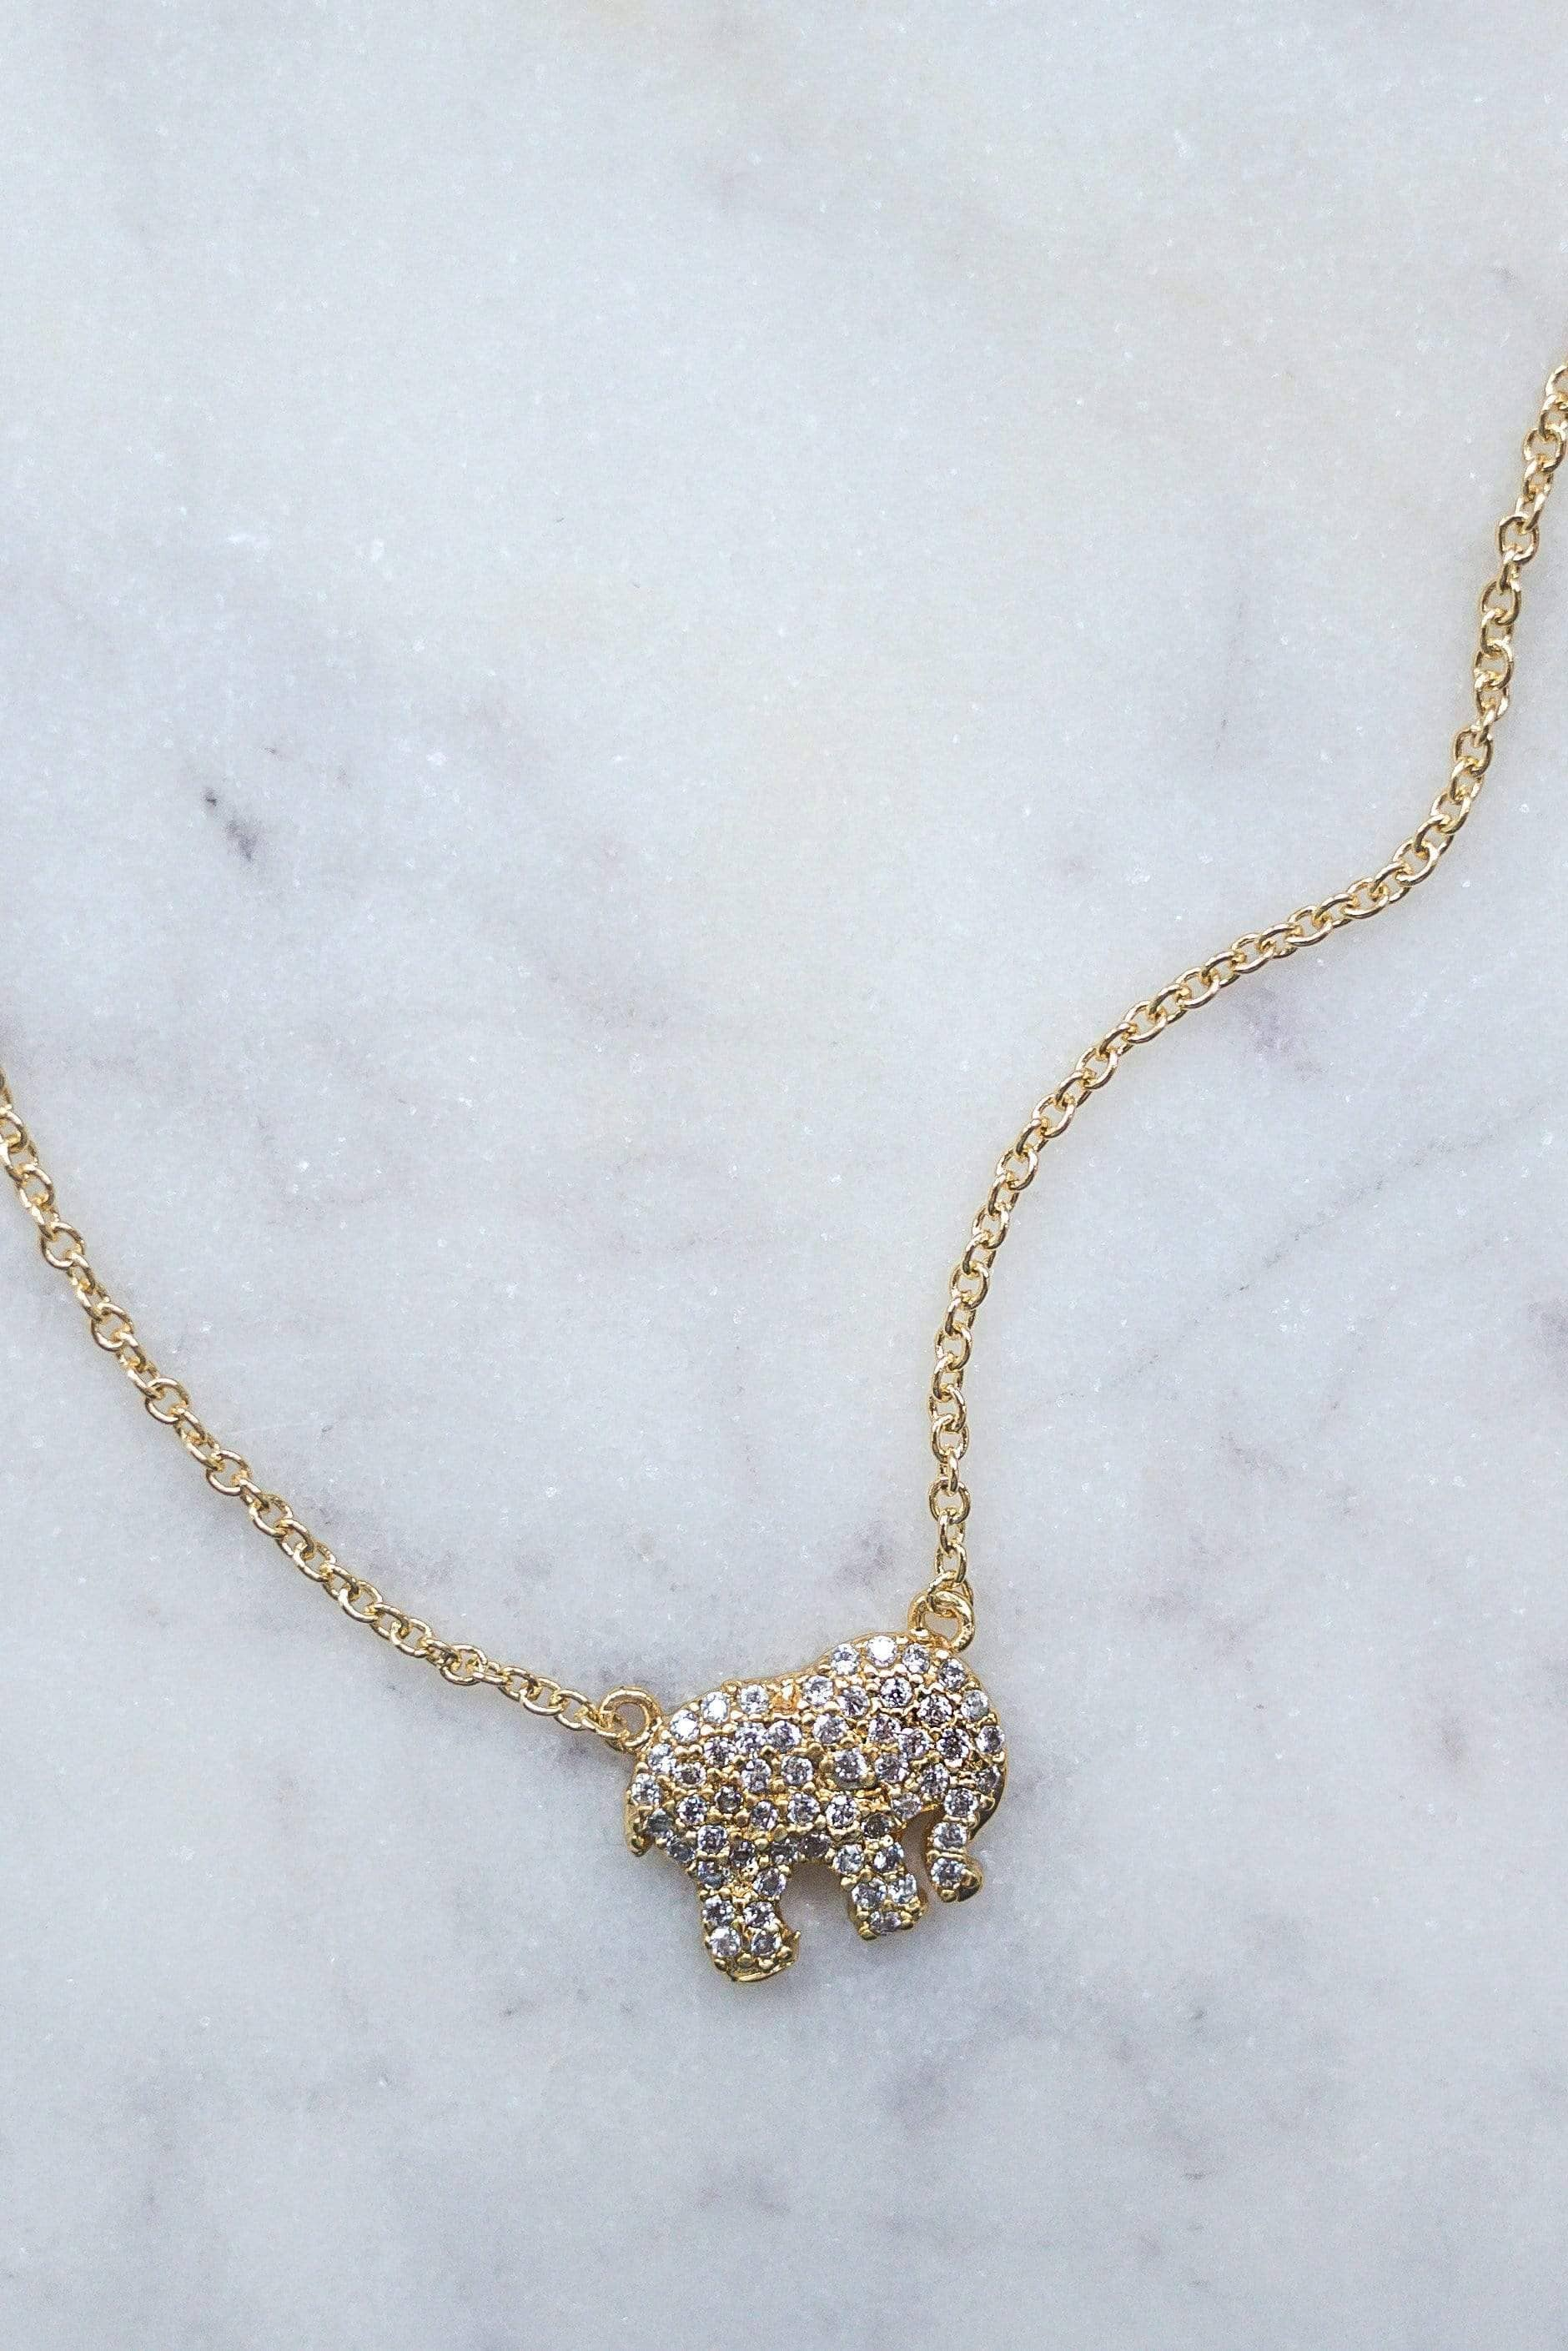 Gold Pave Charm Necklace - Ivory Ella - Jewelry